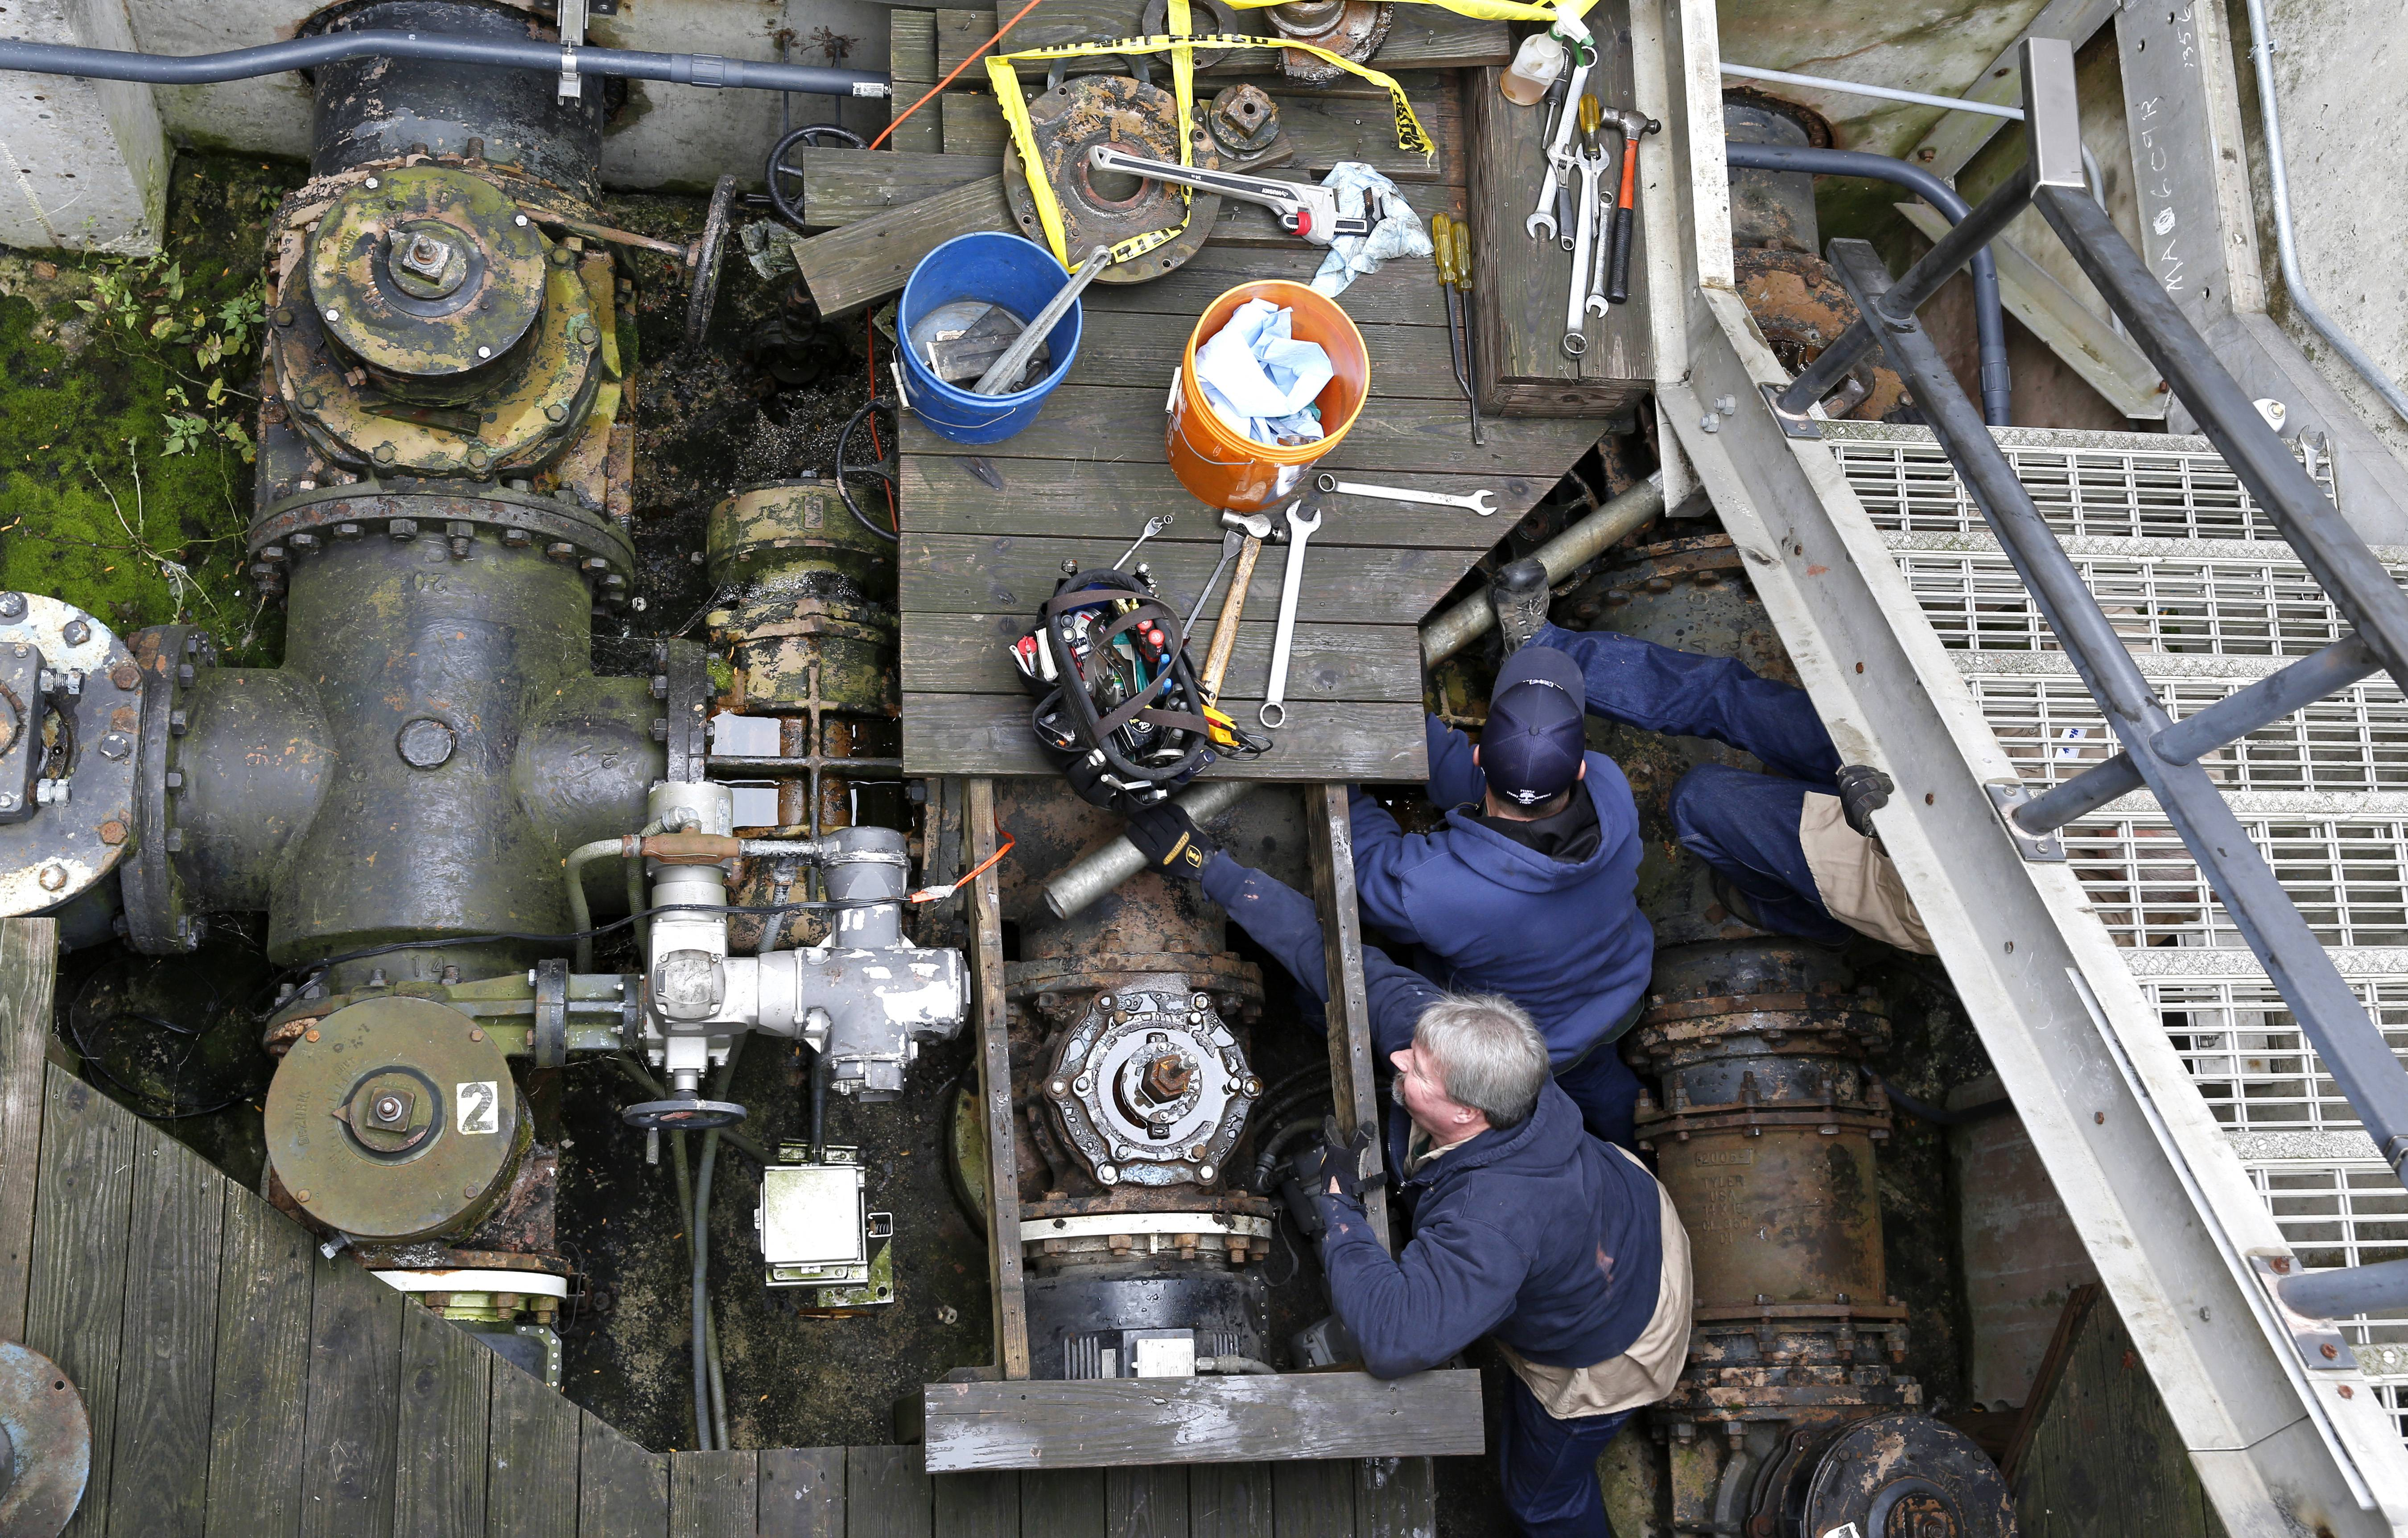 Employees at Naperville's Springbrook Water Reclamation Center change a 40-year-old valve in a solids return line at the facility where wastewater is processed and then released into the Lower DuPage River.